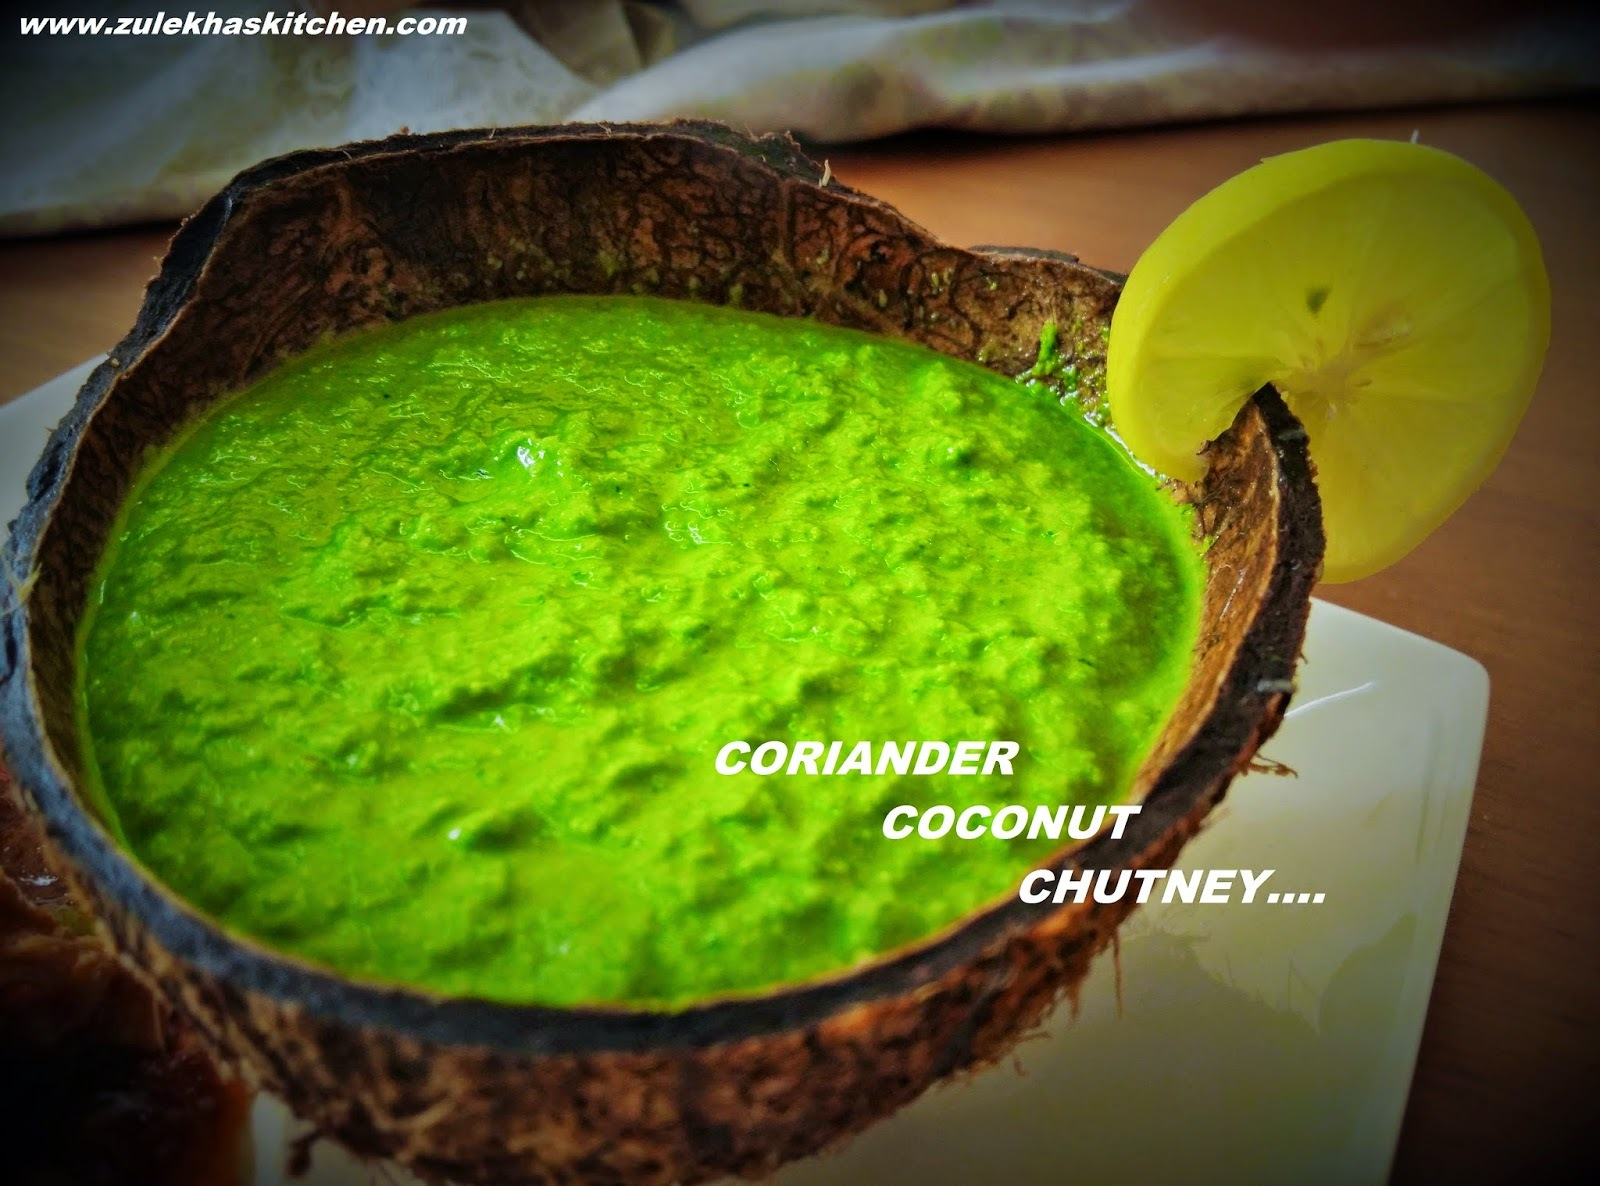 Recipe of Coriander Coconut Chutney